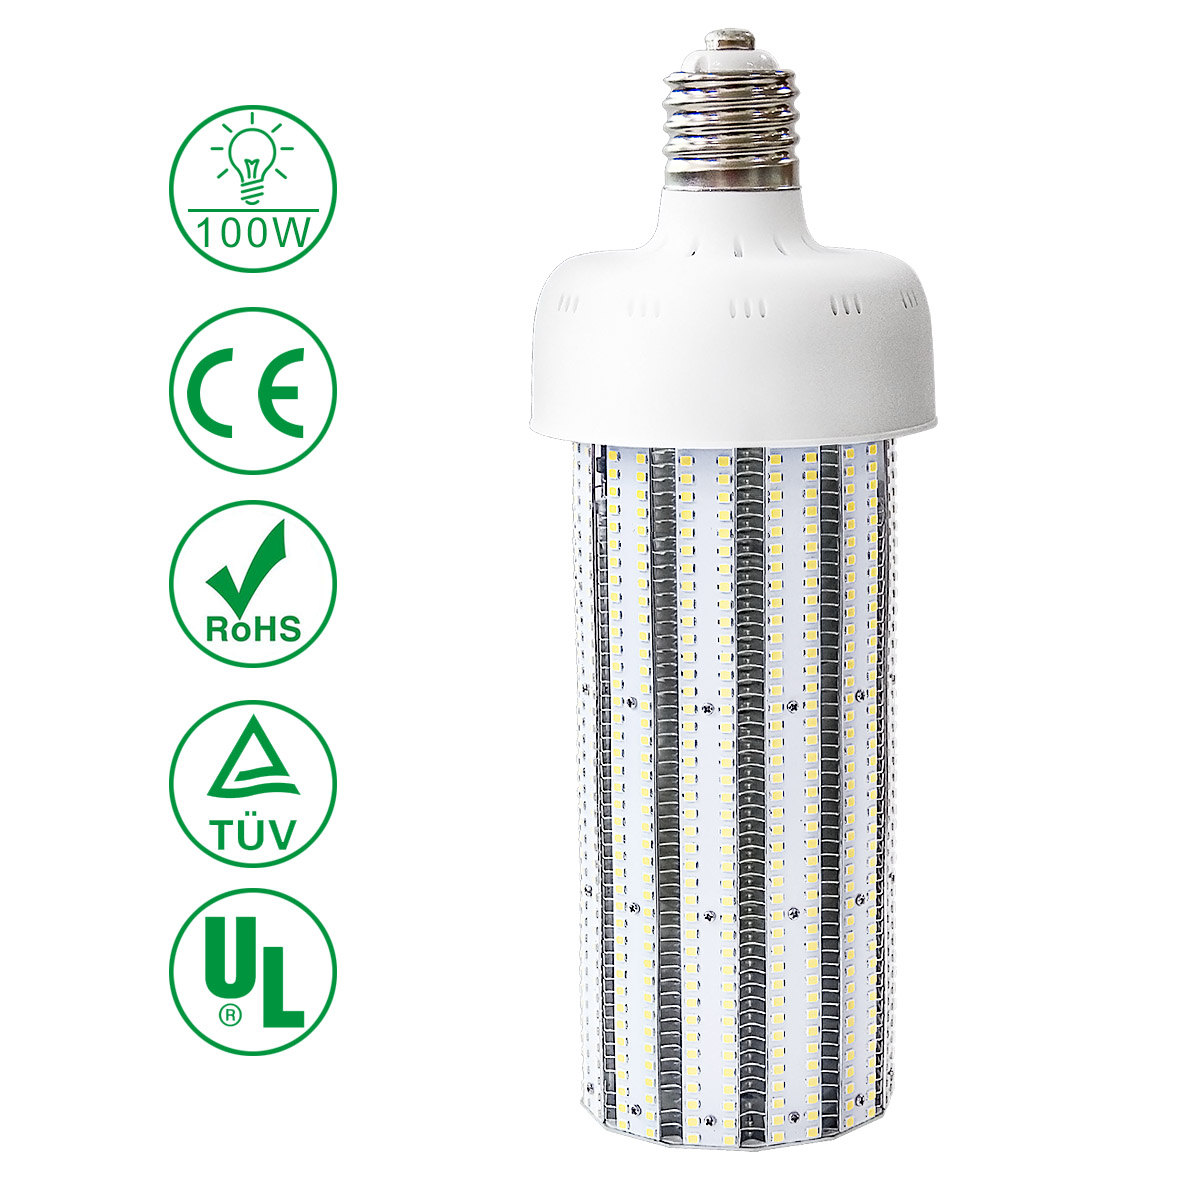 KAWELL 100W LED Corn Light Bulb, E39 Large Mogul Base LED Street/Area Light, Replacement for Fixtures HID/HPS/Metal Halide or CFL, 12000 lumen 3200K (Warm White) UL Listed TUV-Qualified DLC Certified